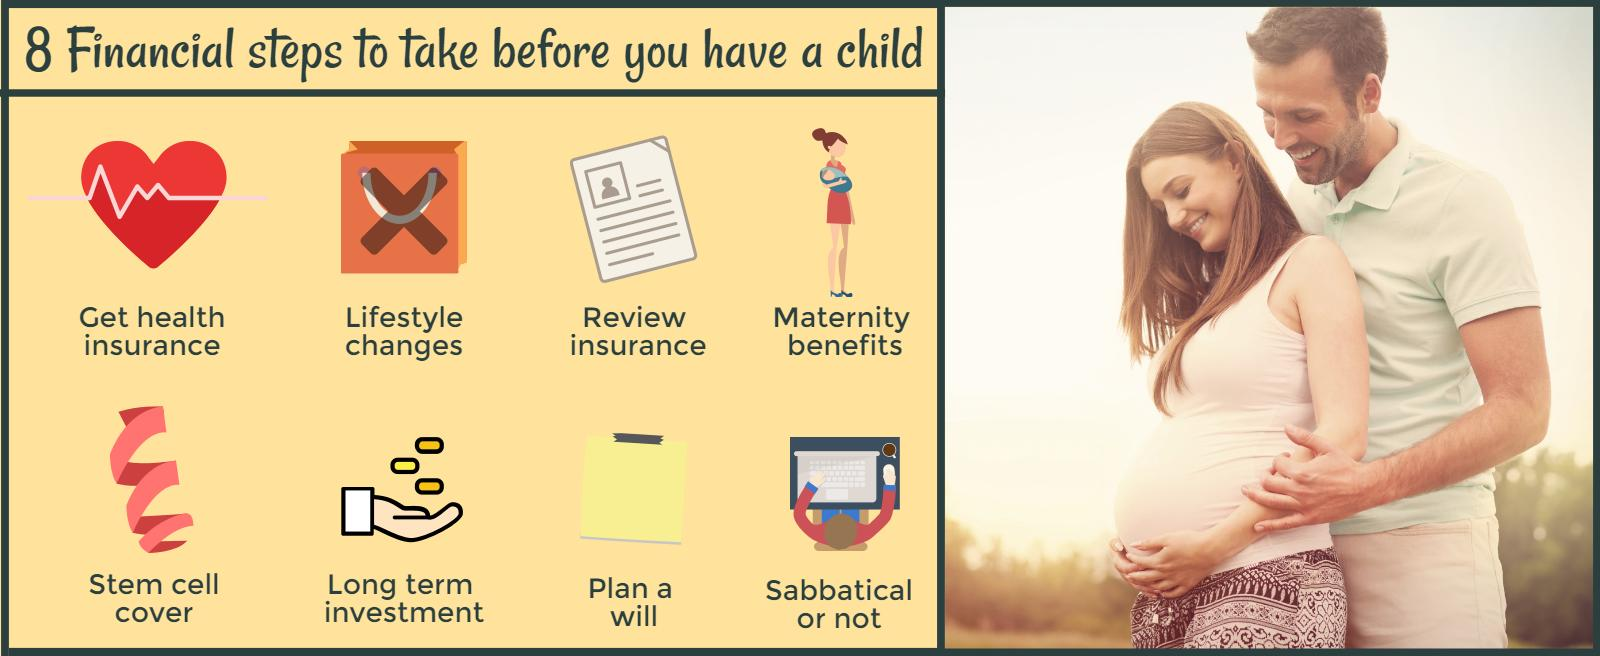 8-financial-steps-to-take-before-you-have-a-child